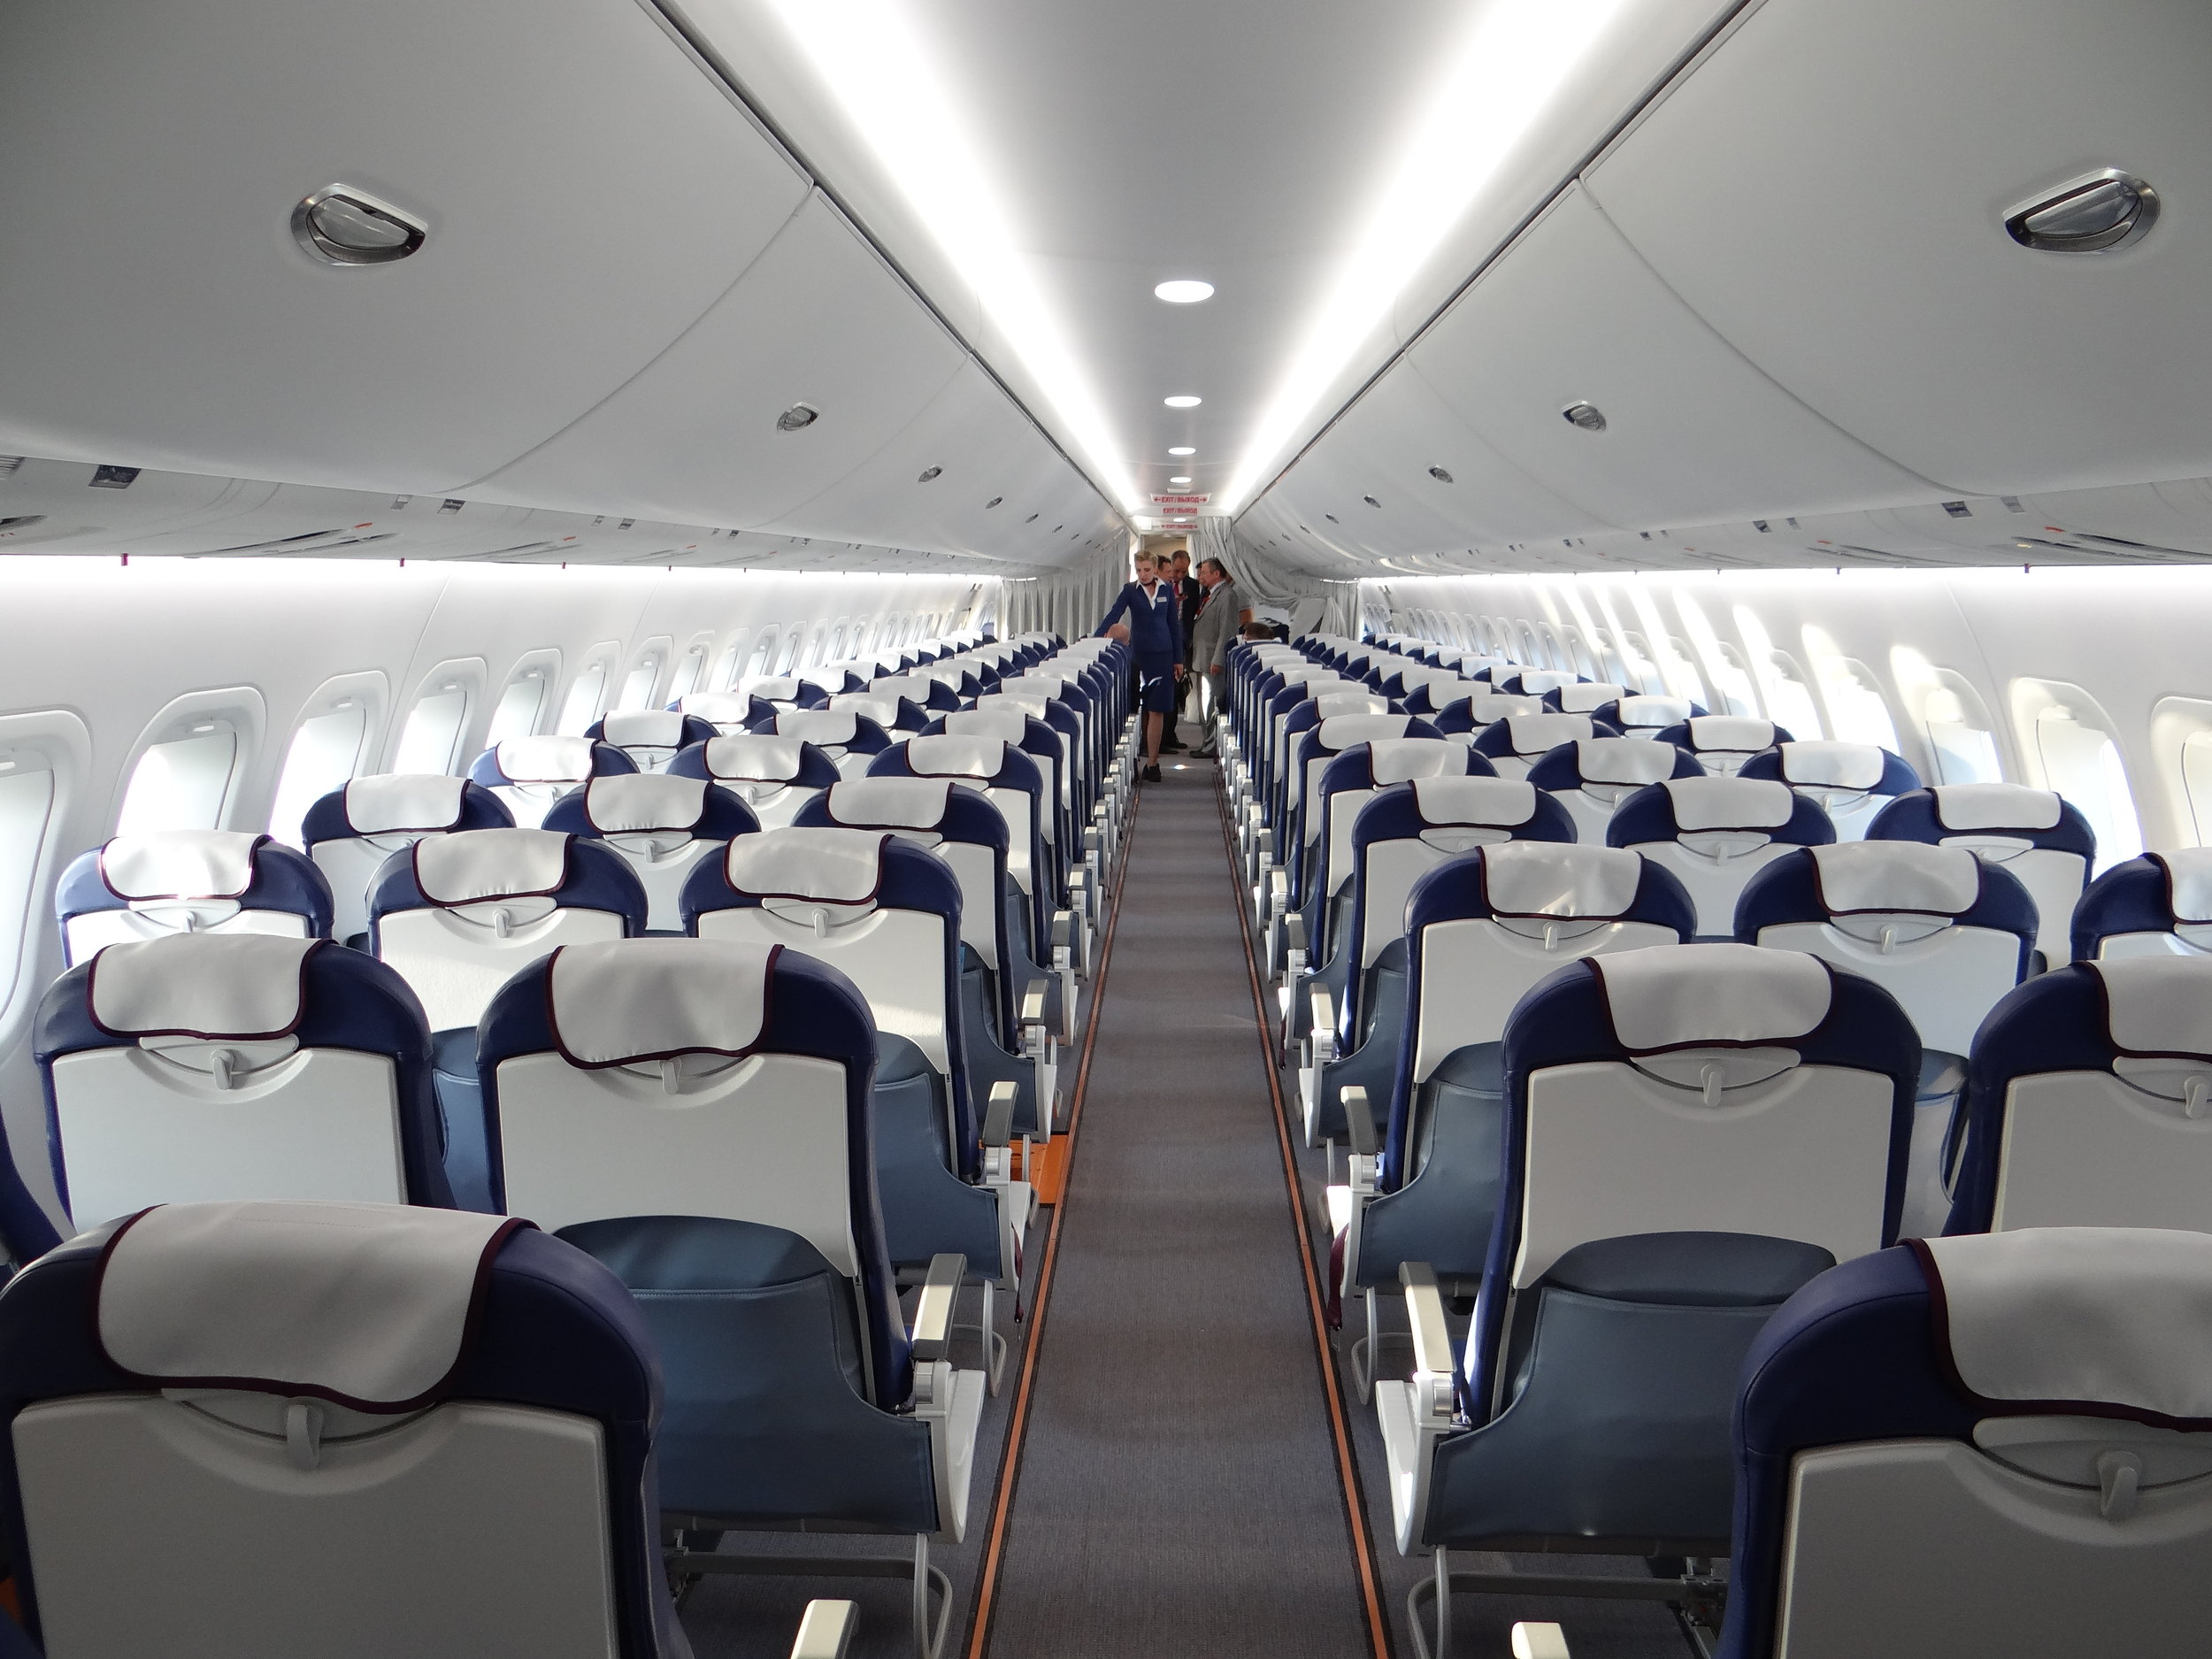 mc-21-cabin-interior.JPG